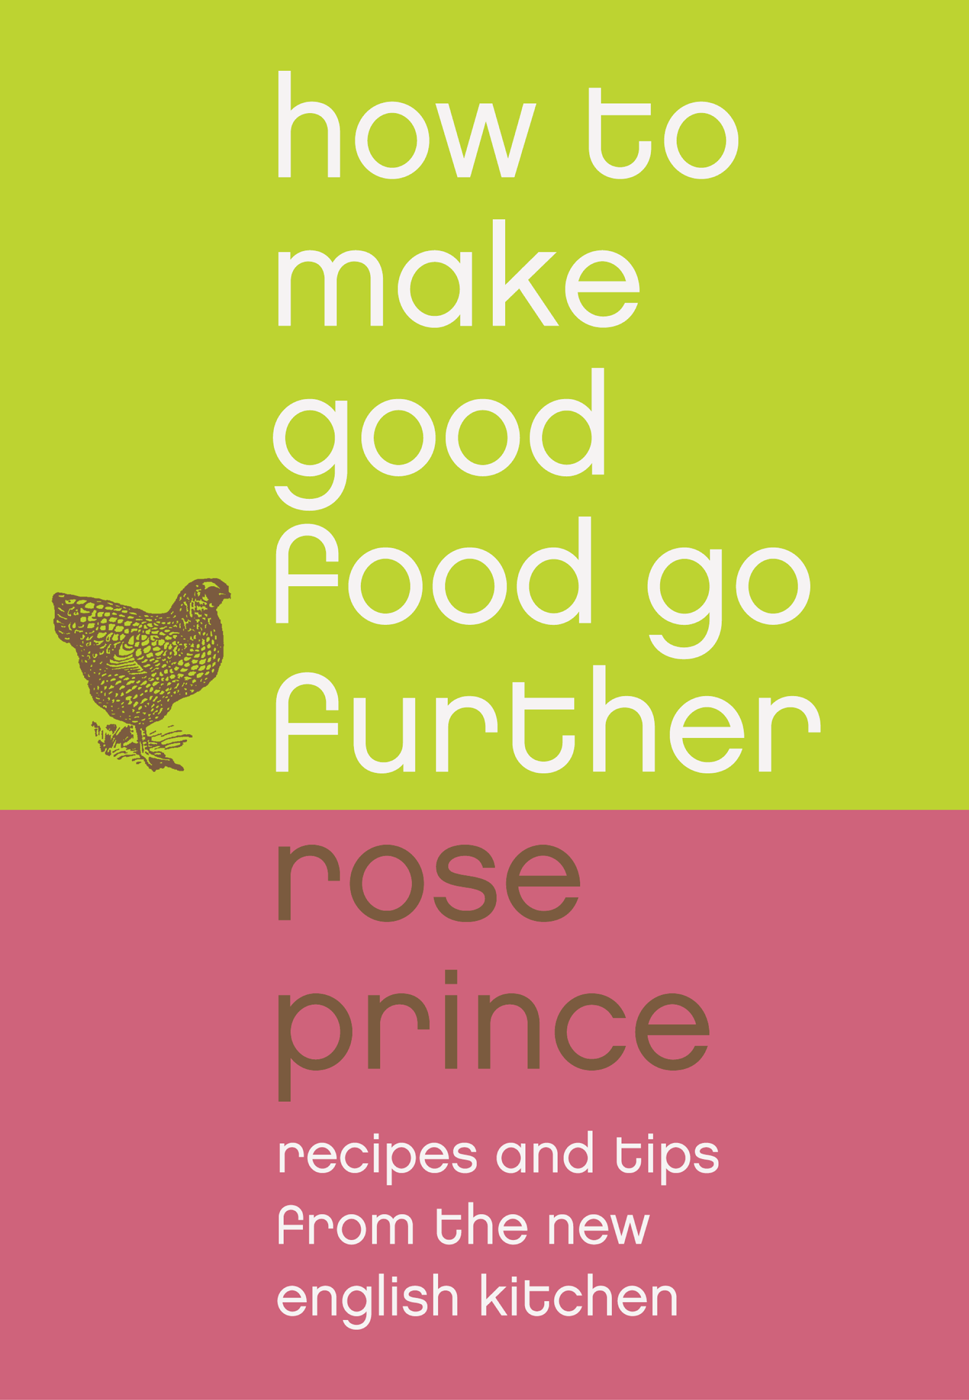 Фото - Rose Prince How To Make Good Food Go Further: Recipes and Tips from The New English Kitchen food mixers bosch mum4856eu home kitchen appliances processor machine equipment for the production of making cooking